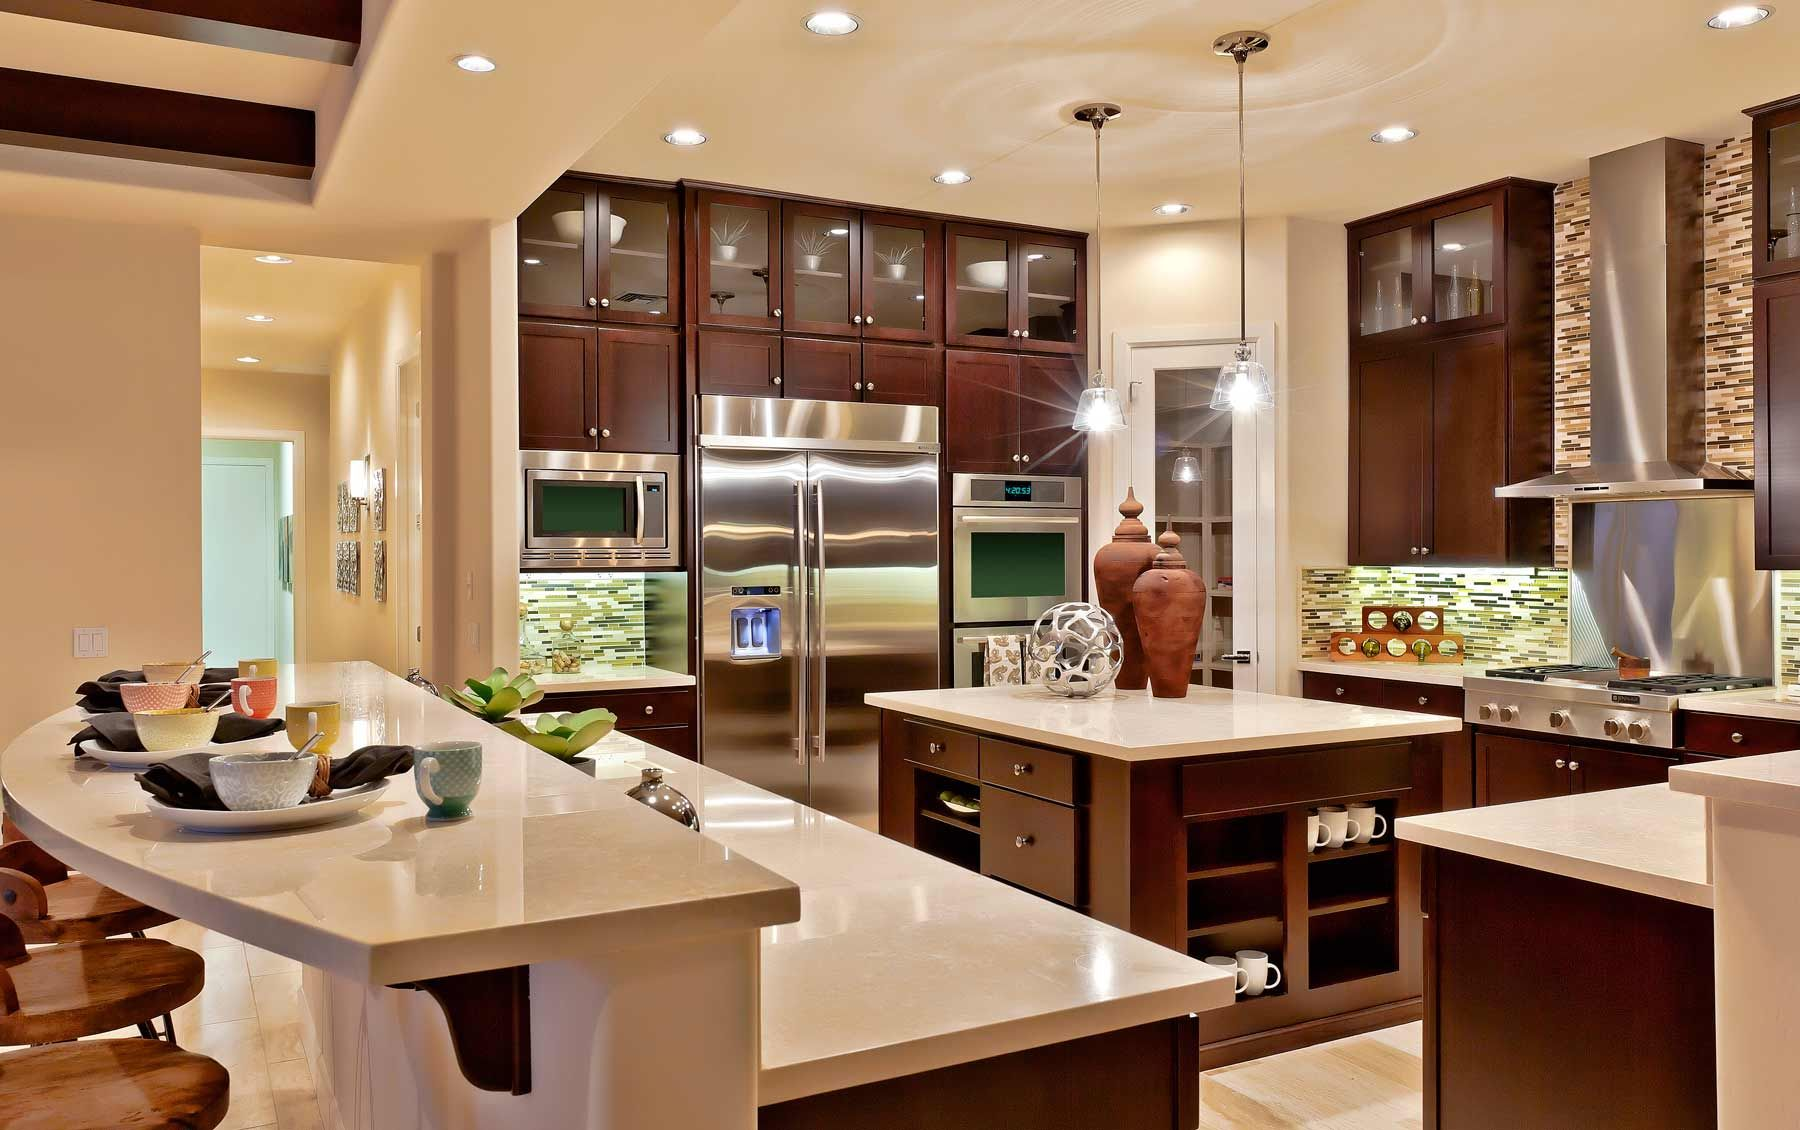 Toll Brothers Model Home Interior Design With Nice Kitchen Island And Beautiful Lighting For Attractive